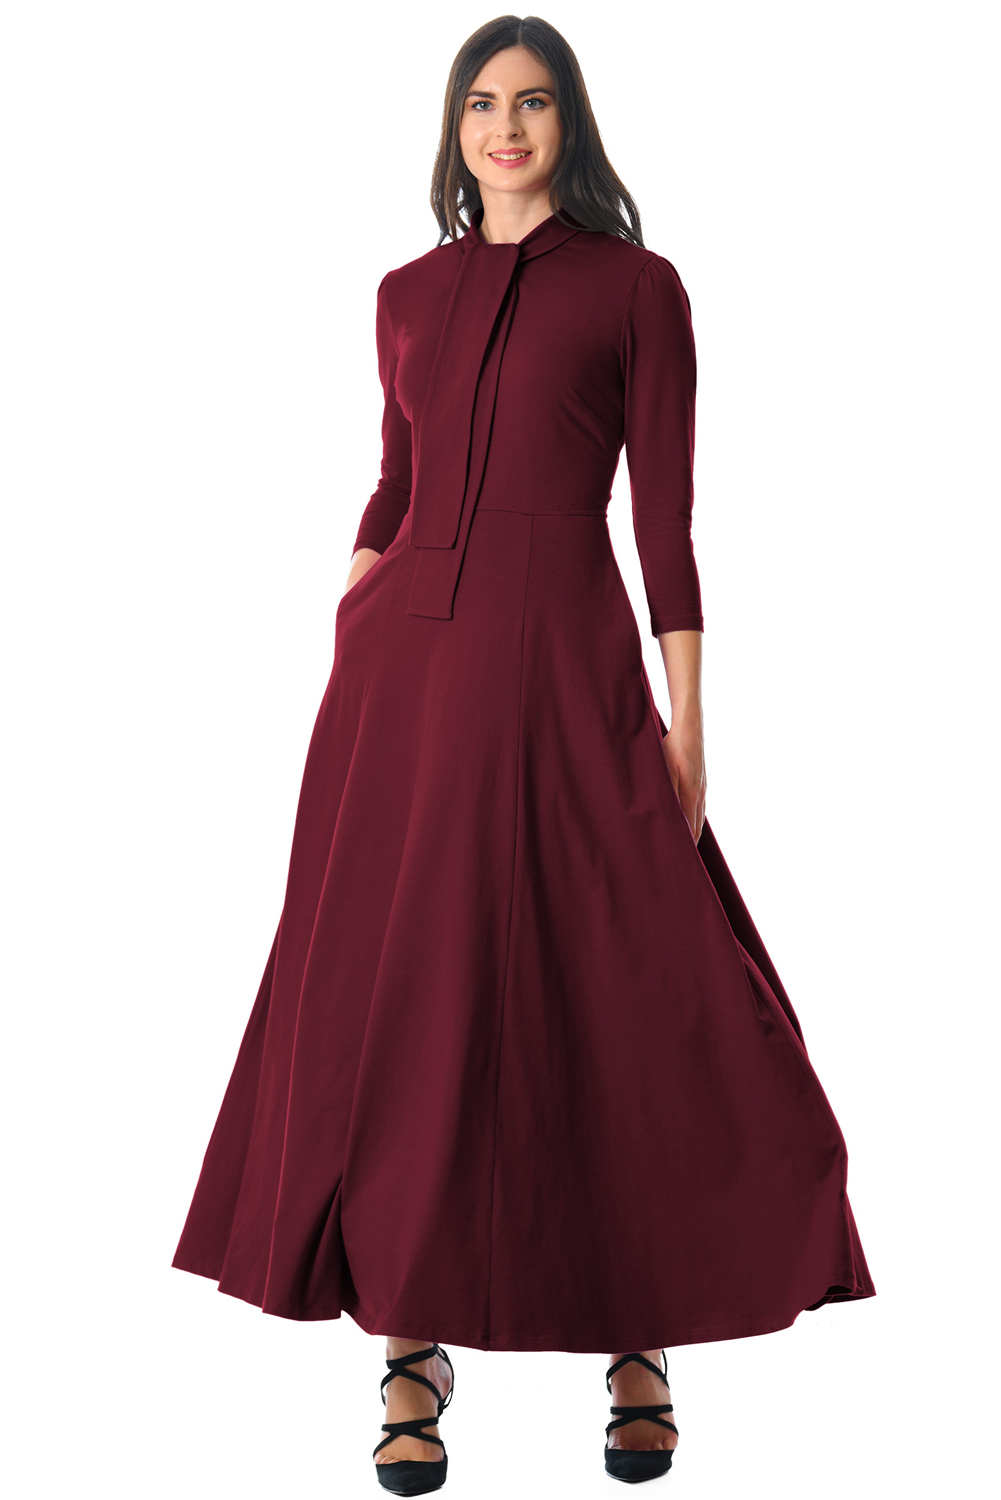 BY610398-3 Burgundy Pocketed  Sleeves Tie Neck Maxi Dress